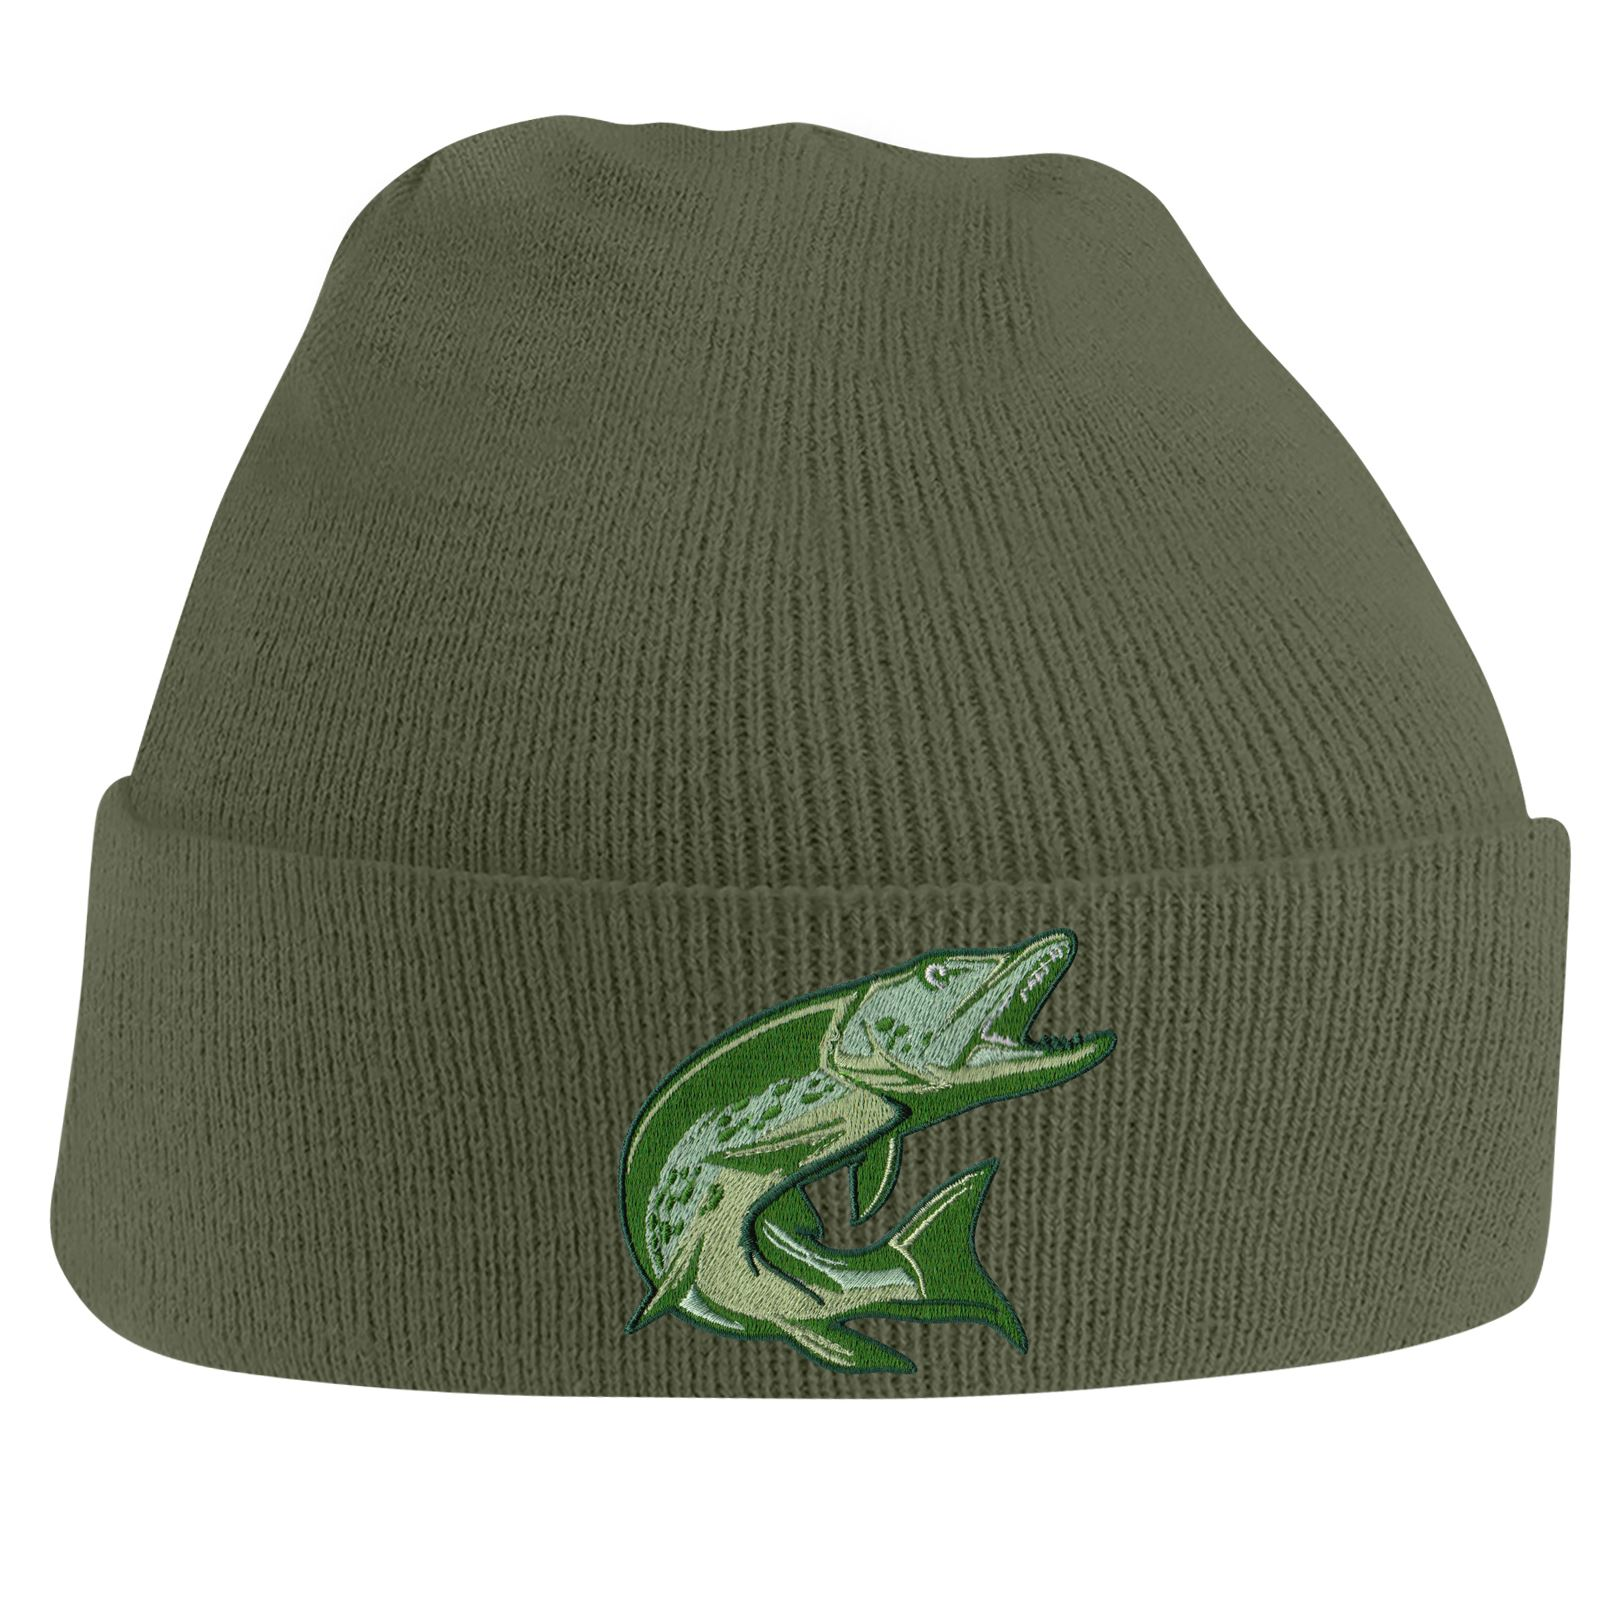 528b31f63fae9 Fishing Beanie Hat Knit Cap Beanies Embroidered Pike Fish Hats Gifts for Men